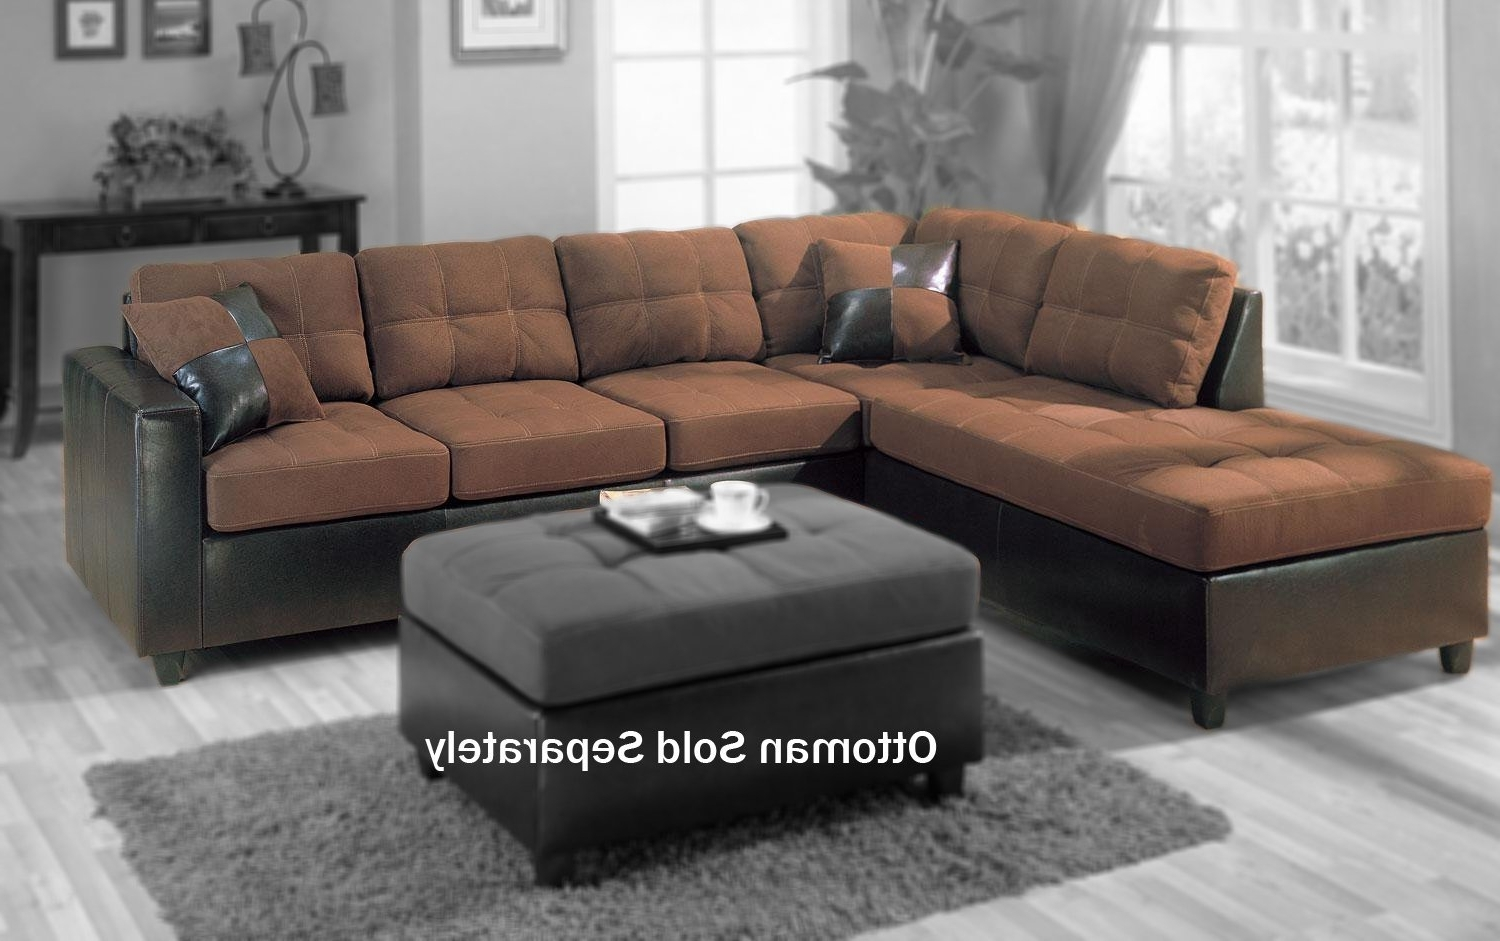 Most Recent Amazon: Coaster Fine Furniture 505655Harlow L Sectional Sofa Throughout Sectional Sofas At Amazon (View 4 of 15)